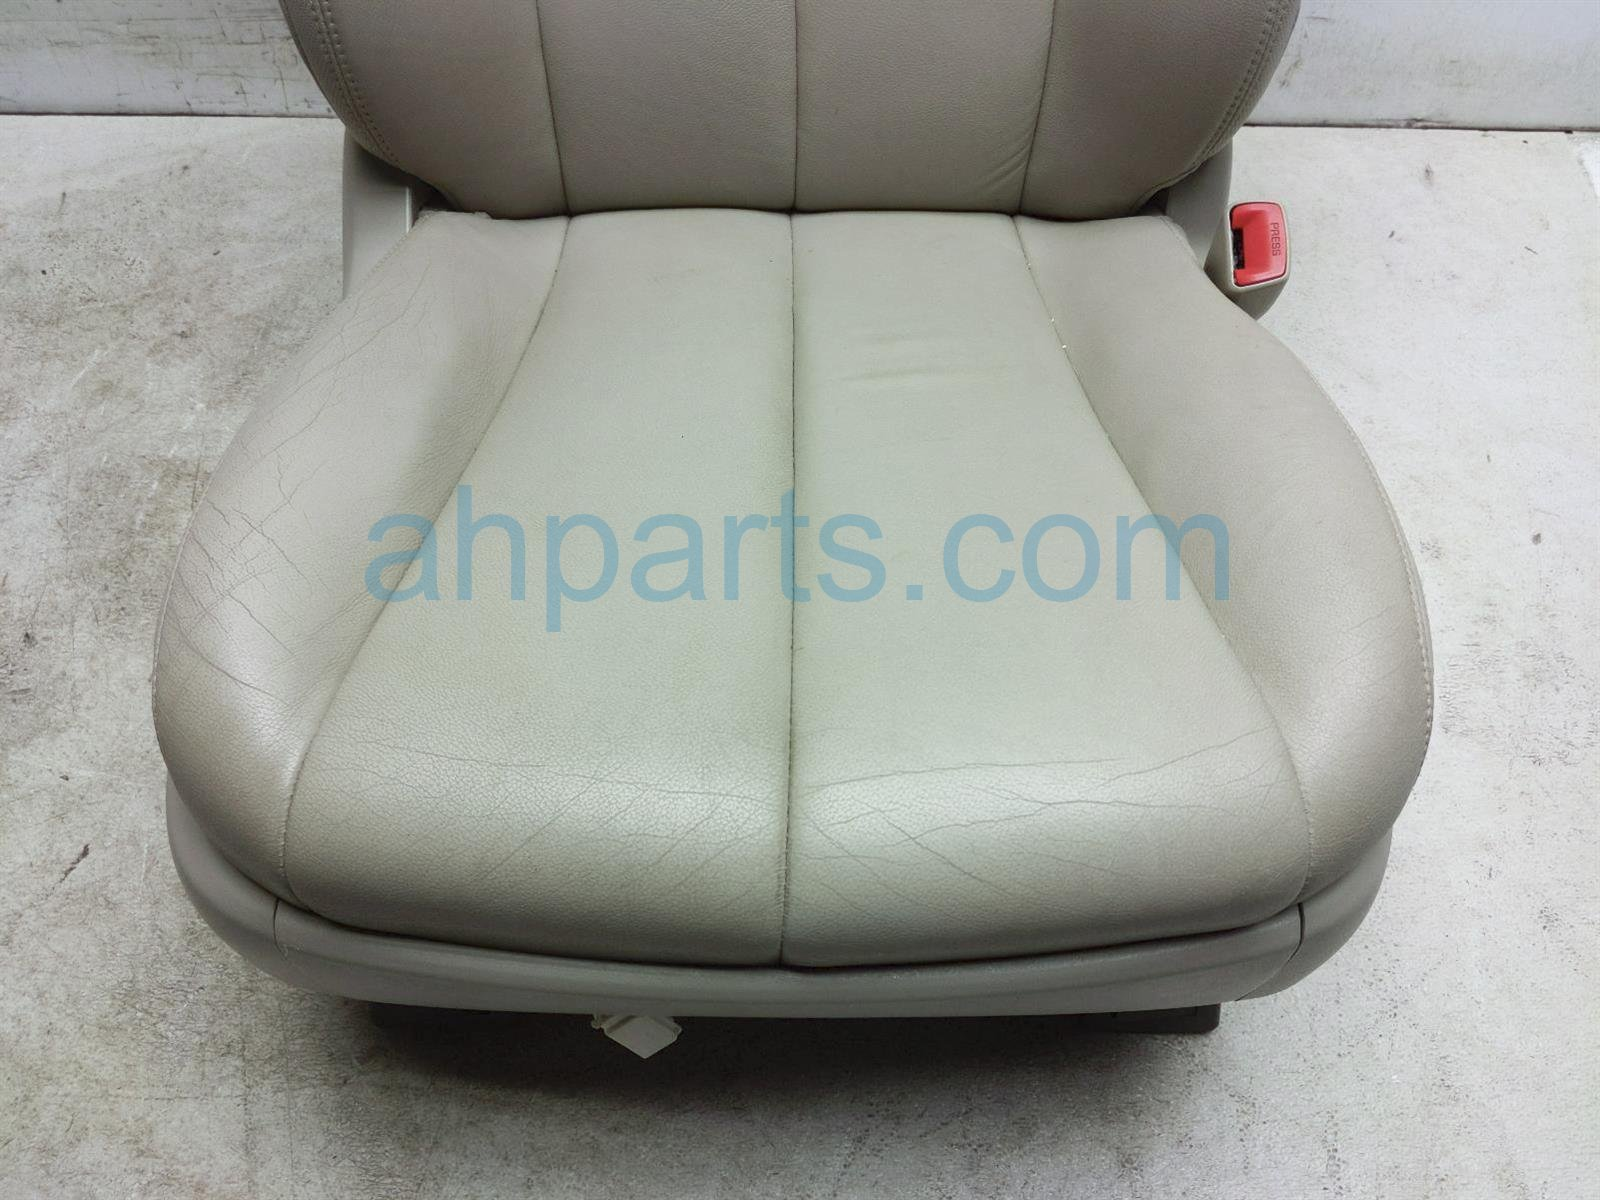 2013 Toyota Sienna Front Passenger Seat   Tan   W/o Airbag   Note 71071 08101 B4 Replacement